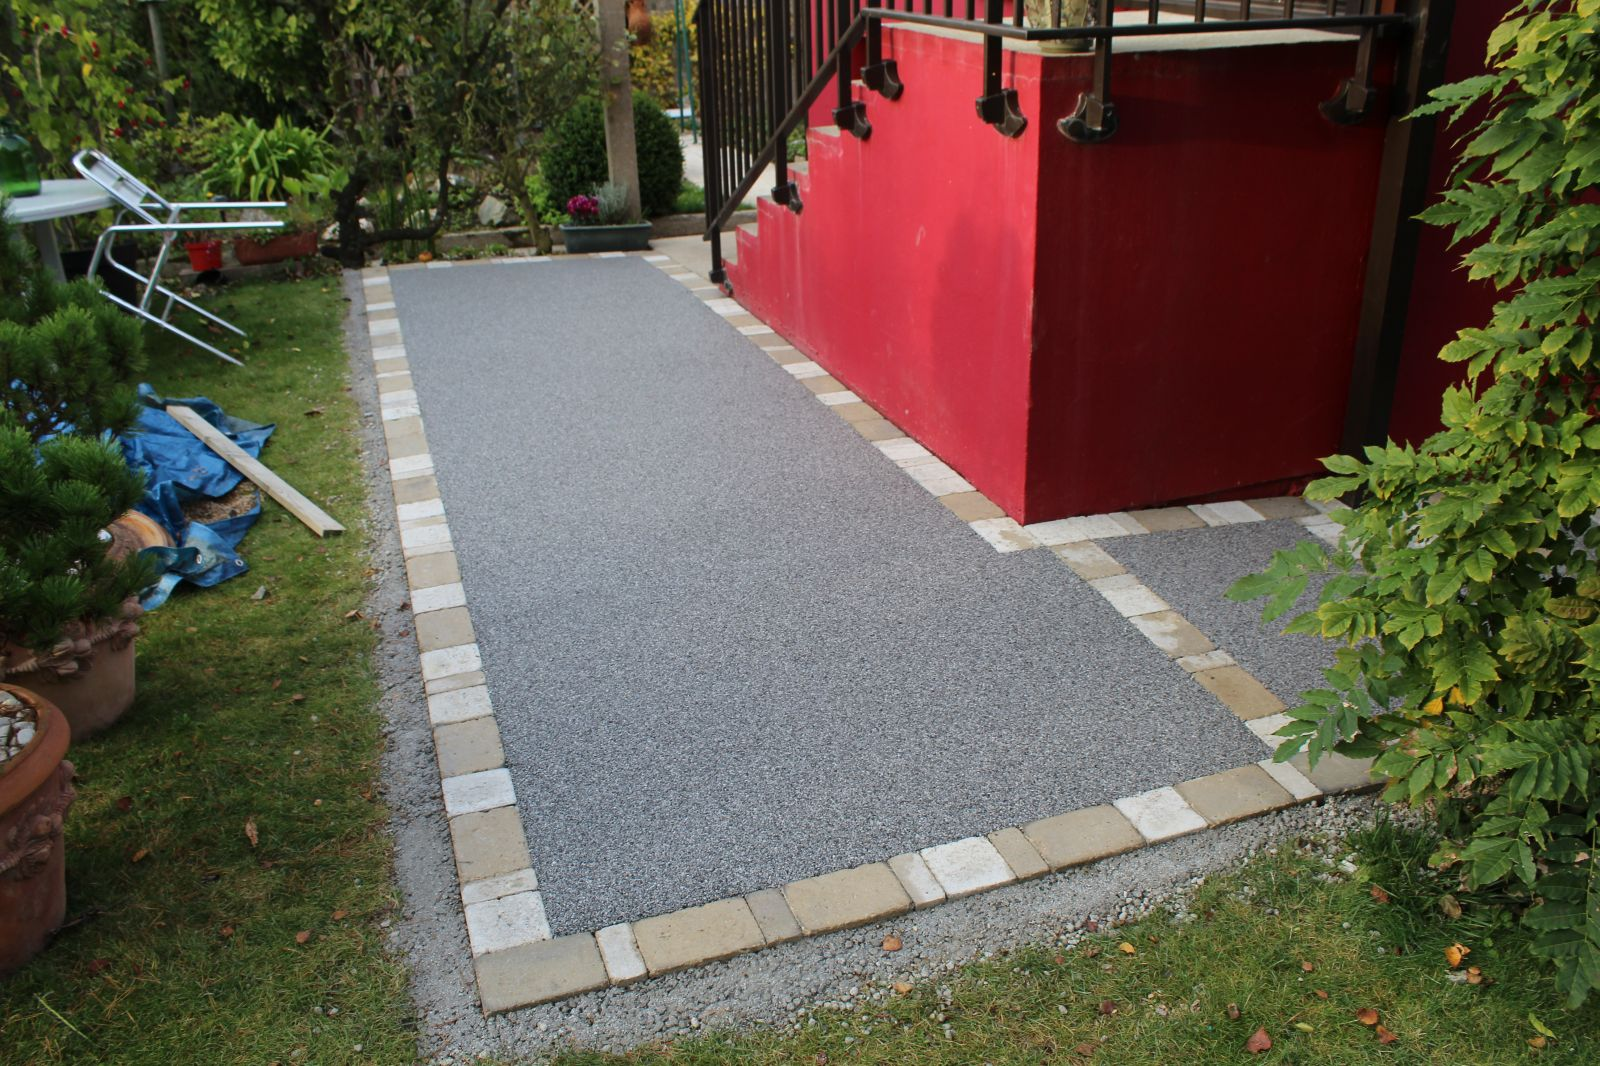 Prix carrelage piscine m2 28 images carrelage sol sans for Prix colle carrelage exterieur